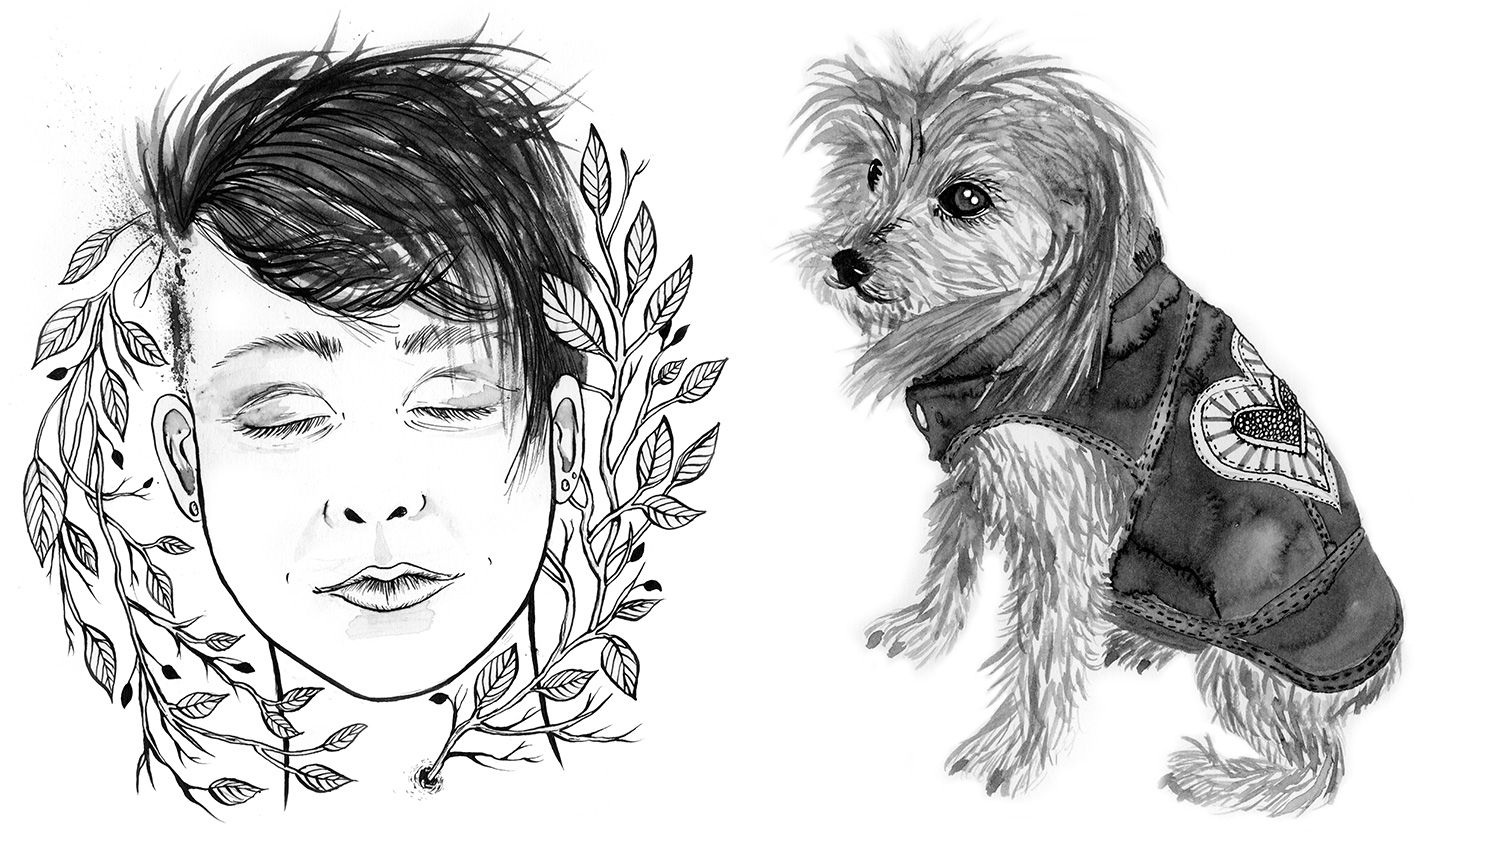 Sarah J Coleman draws 80 illustrations for Andrea Gibson's